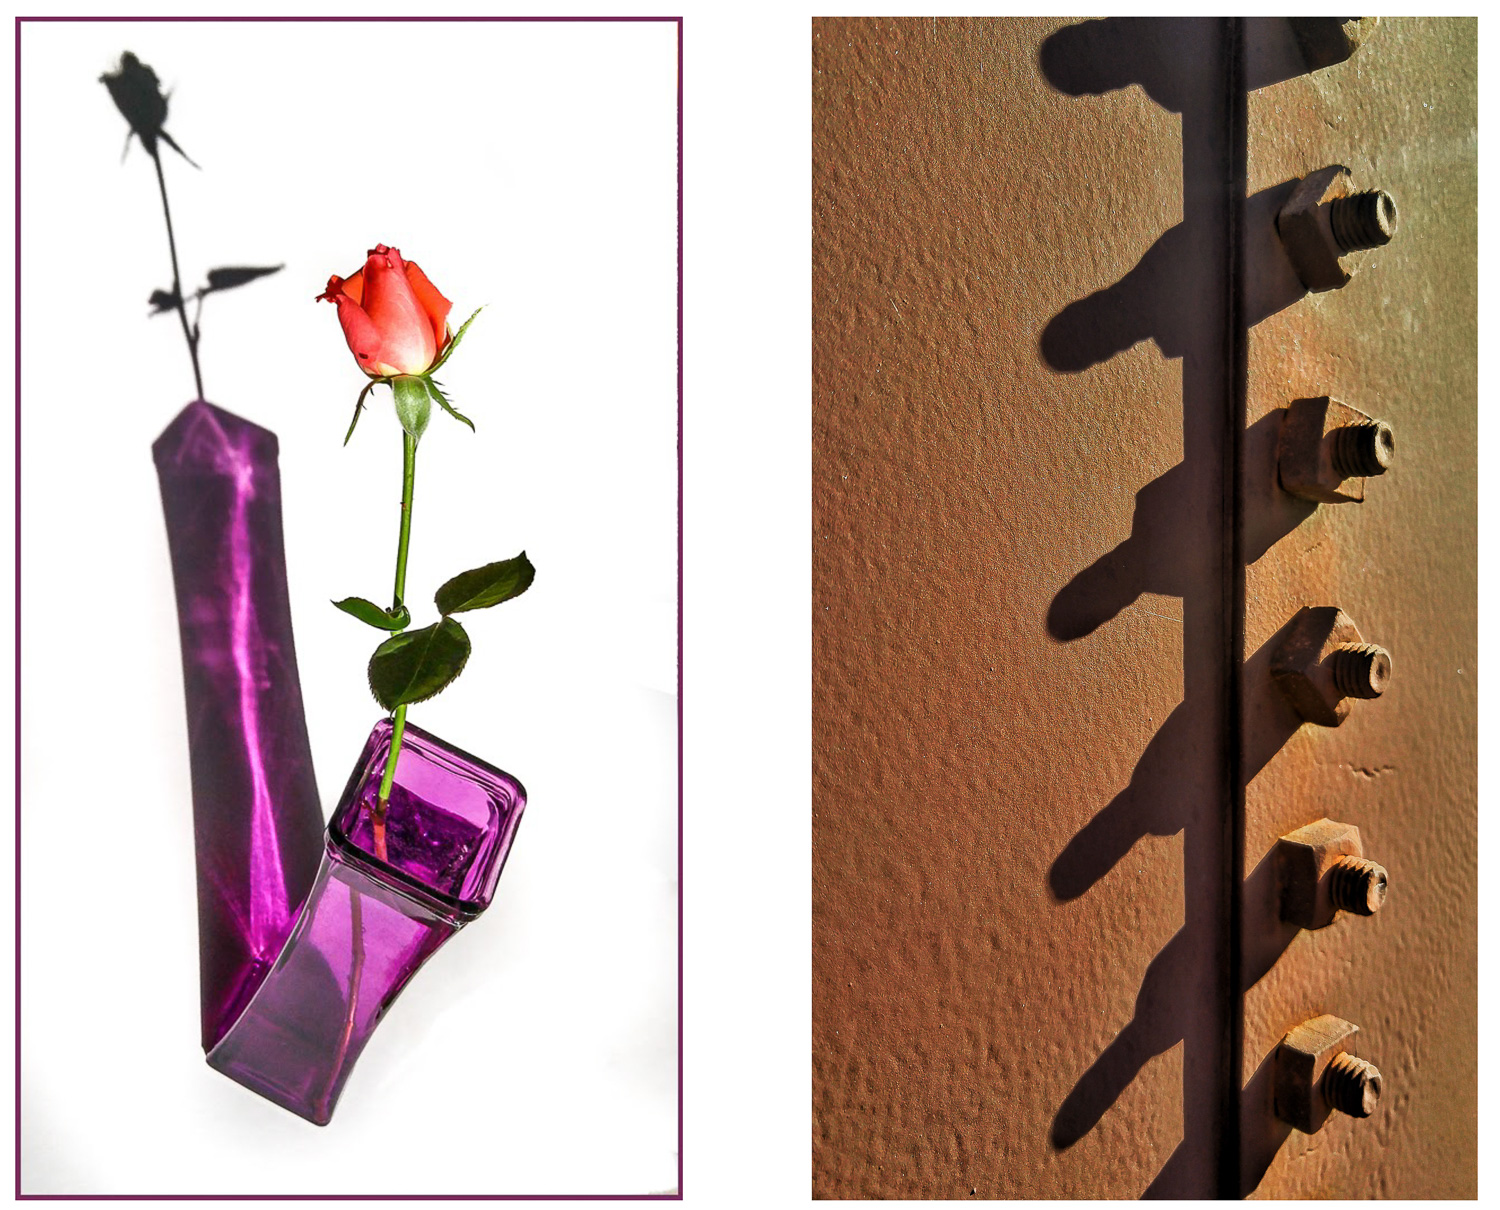 Image: The shadows are as much the subject as the other objects in these photos.